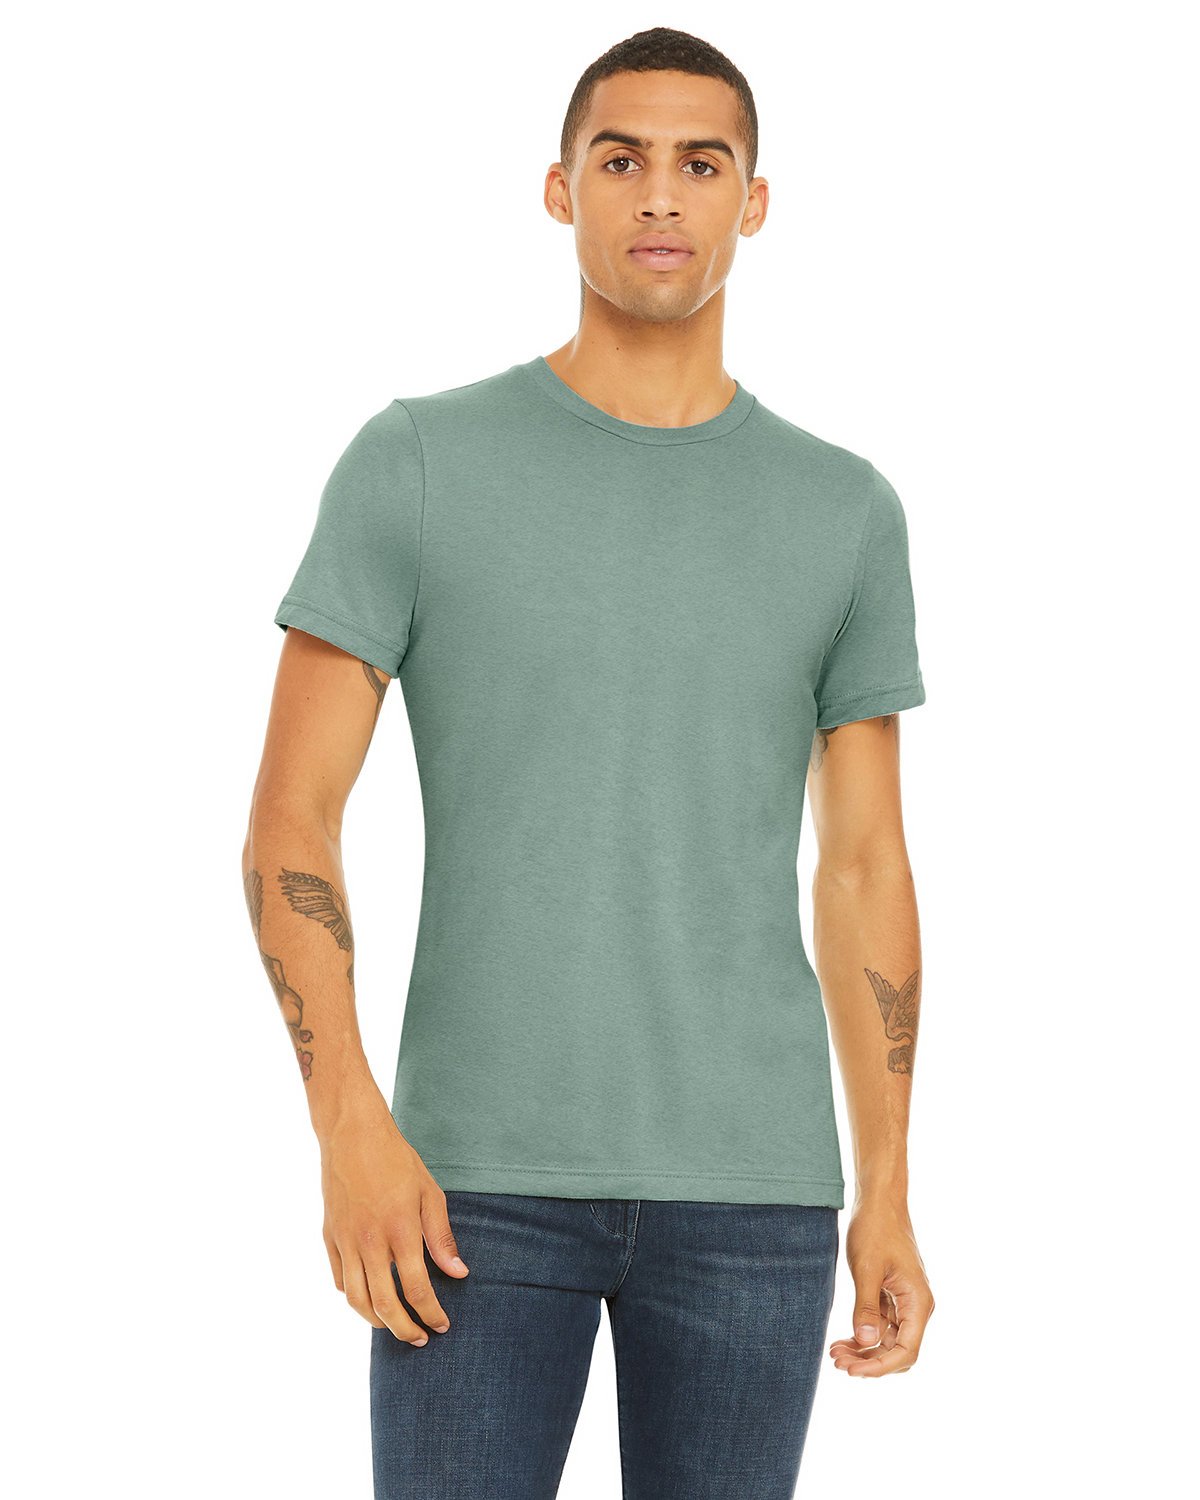 Bella + Canvas Unisex Heather CVC T-Shirt HTHR DUSTY BLUE